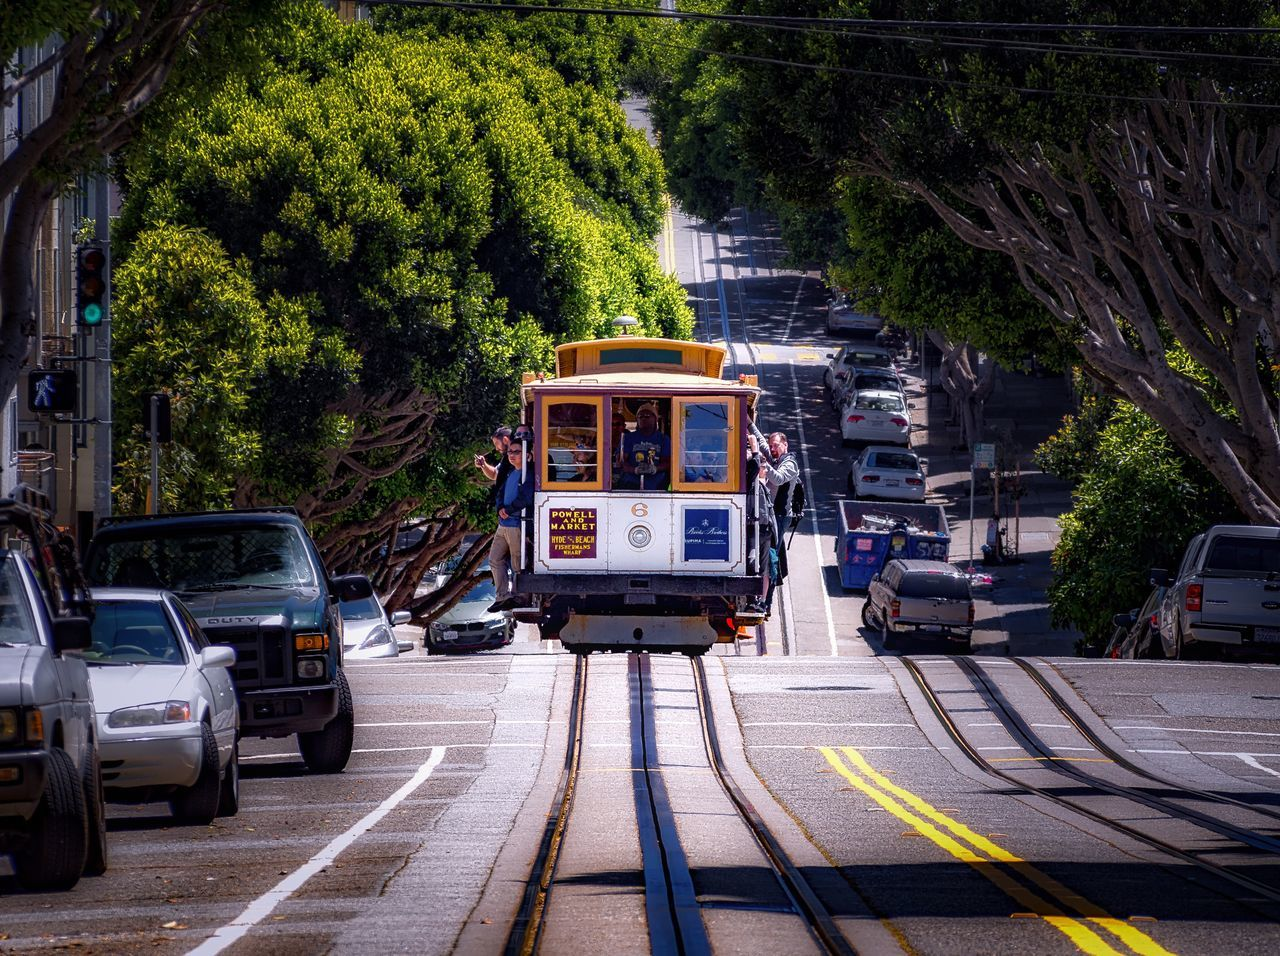 San Francisco Cable Car Travel Travel Photography Travel San Francisco California Public Transportation Trolly Cityscapes Trees Urban Landscape Leading Lines Outdoors The Way Forward Street Diminishing Perspective City Life